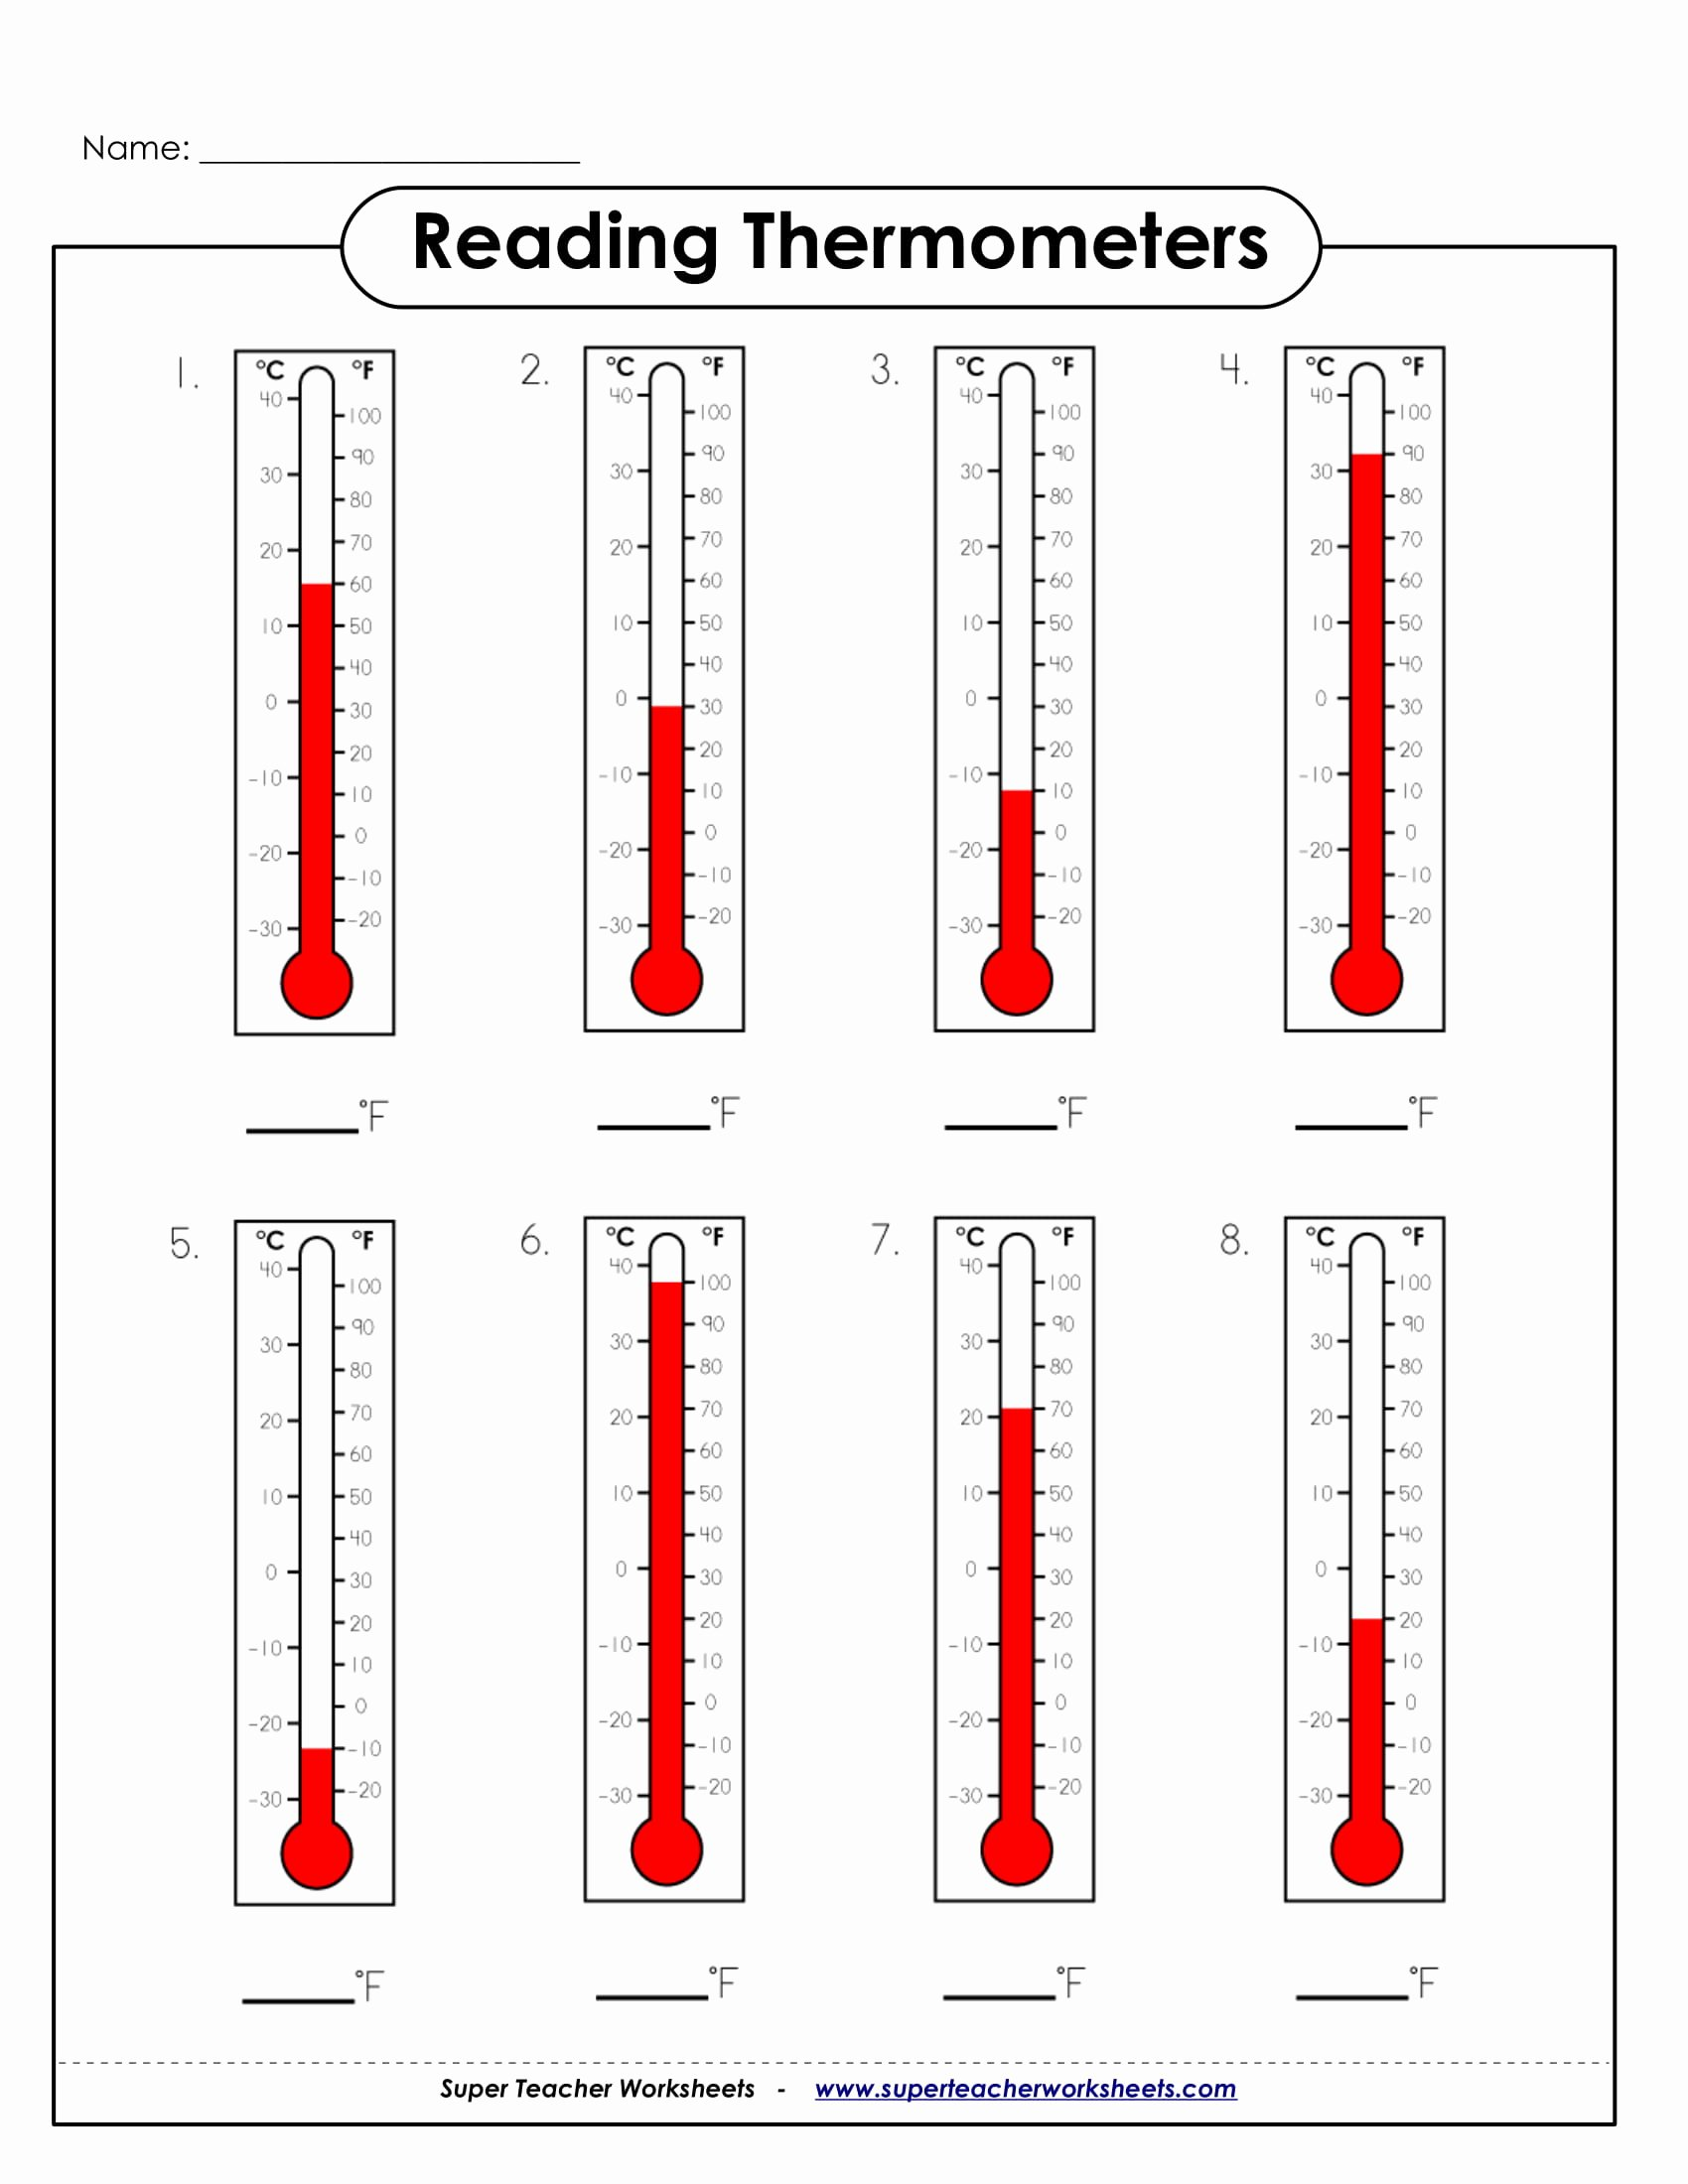 Reading A thermometer Worksheet New 9 Math Worksheets for Students Pdf